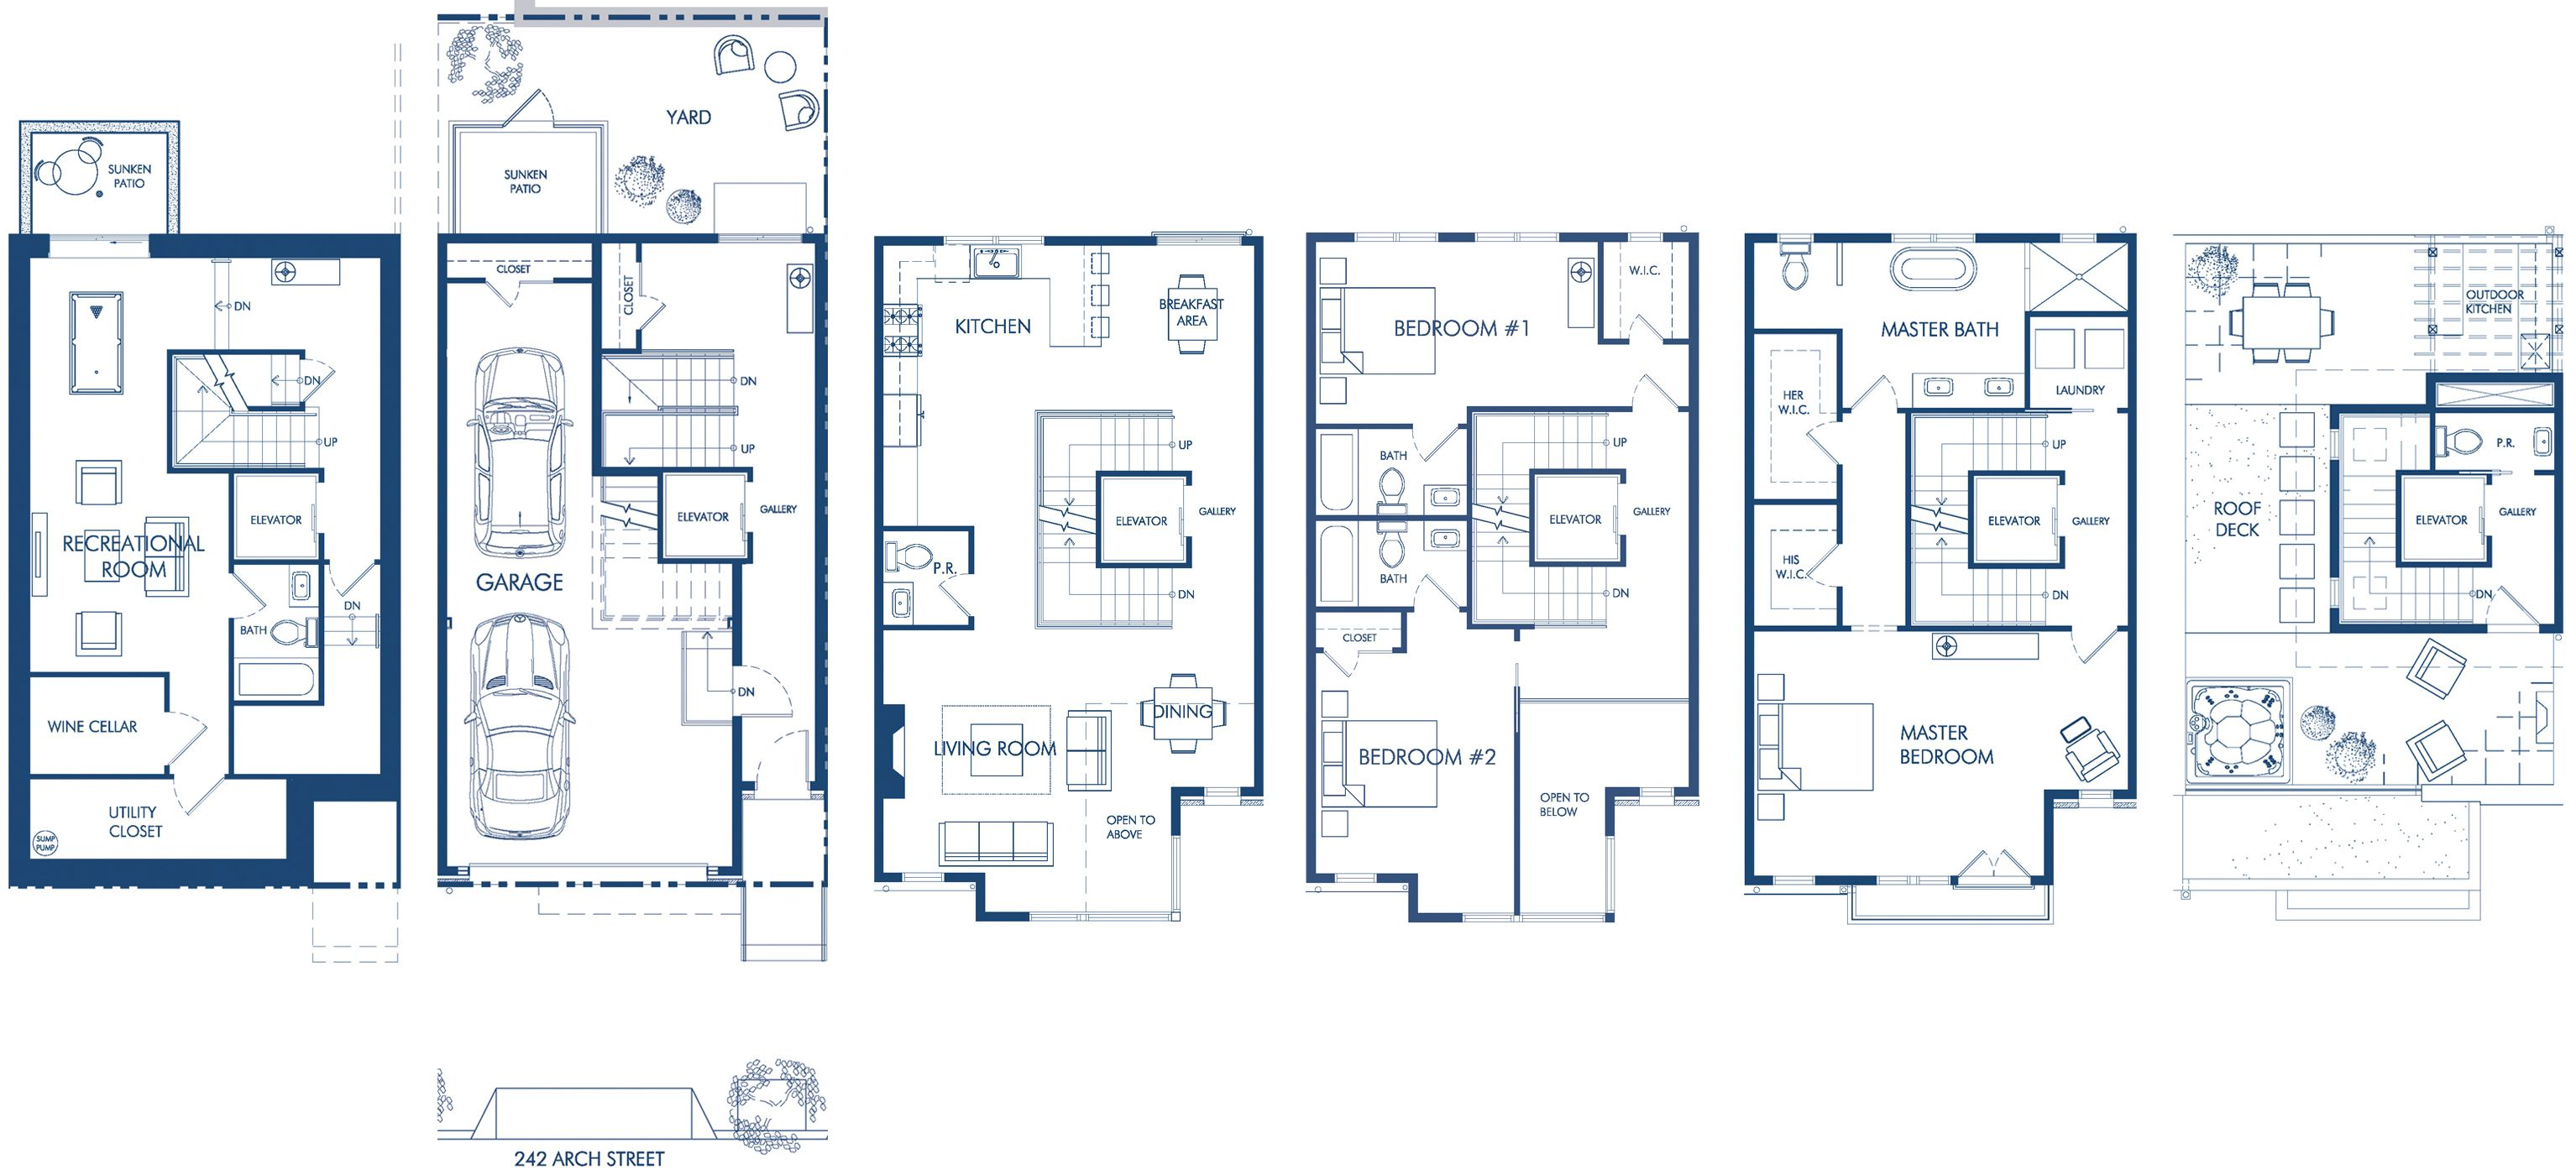 The ross luxury townhomes 242 arch street design for Urban townhouse floor plans